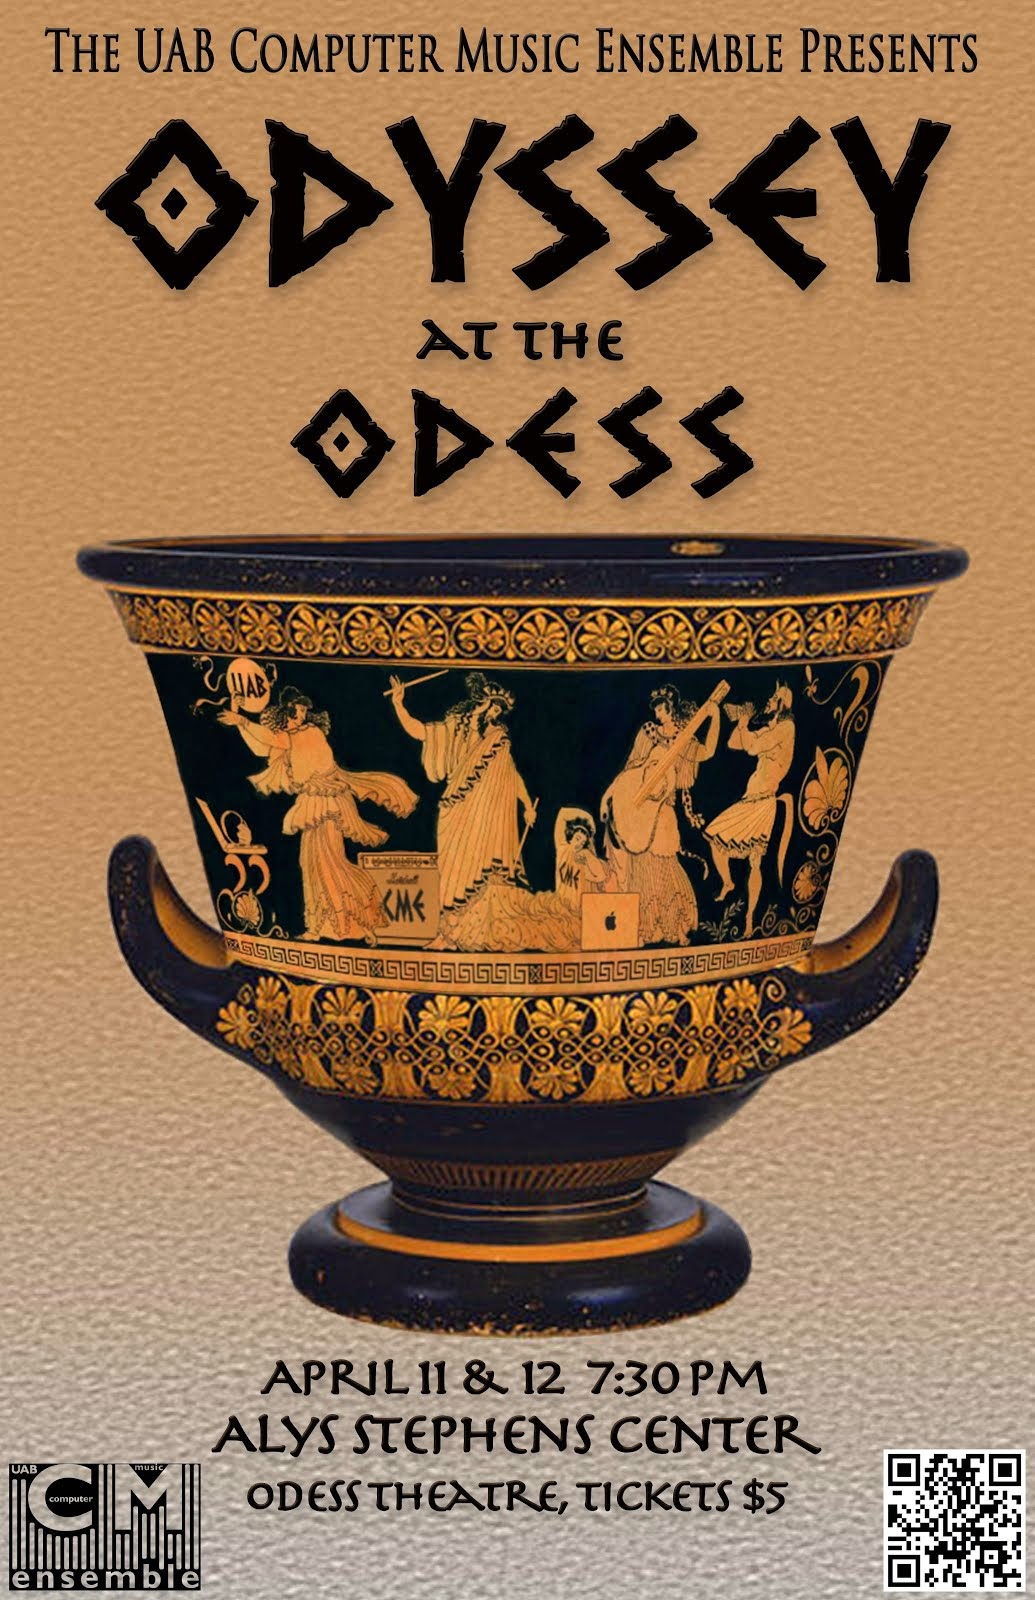 Odyssey at the Odess